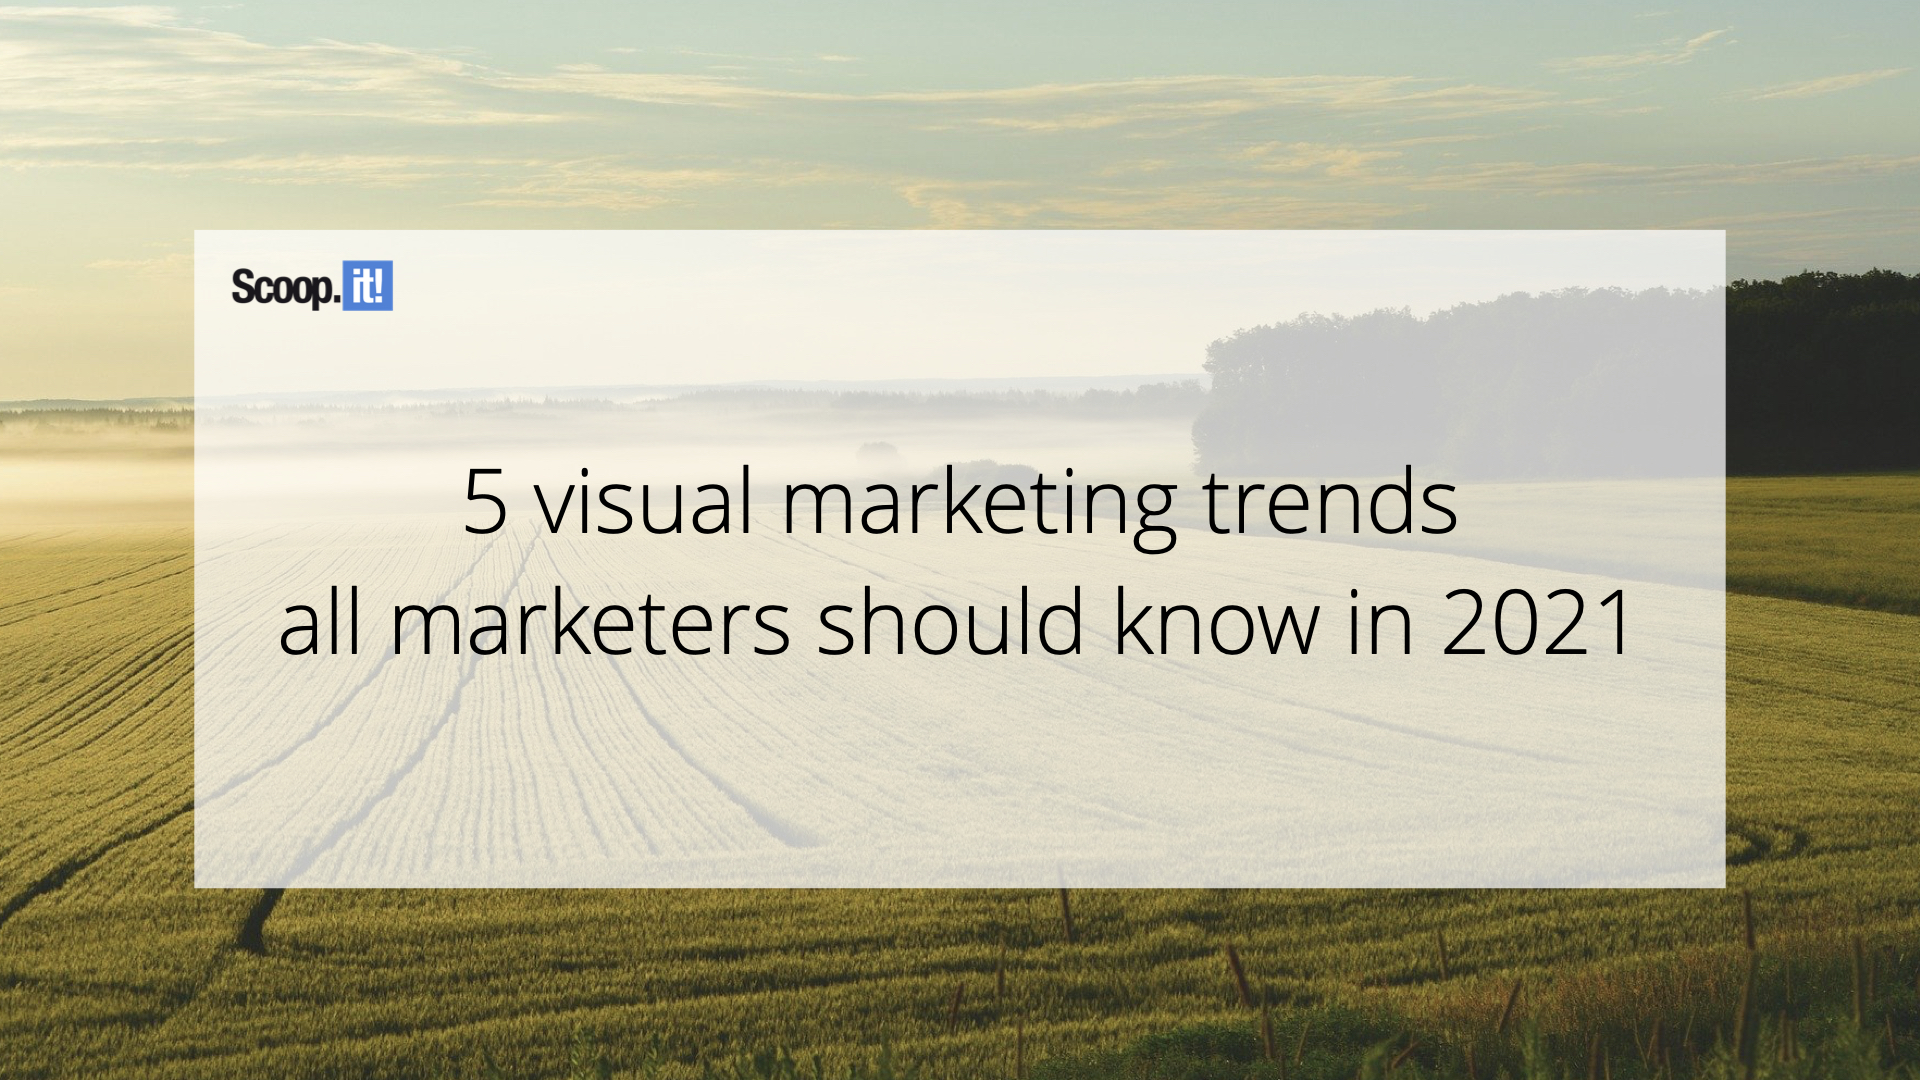 5 visual marketing trends all marketers should know in 2021